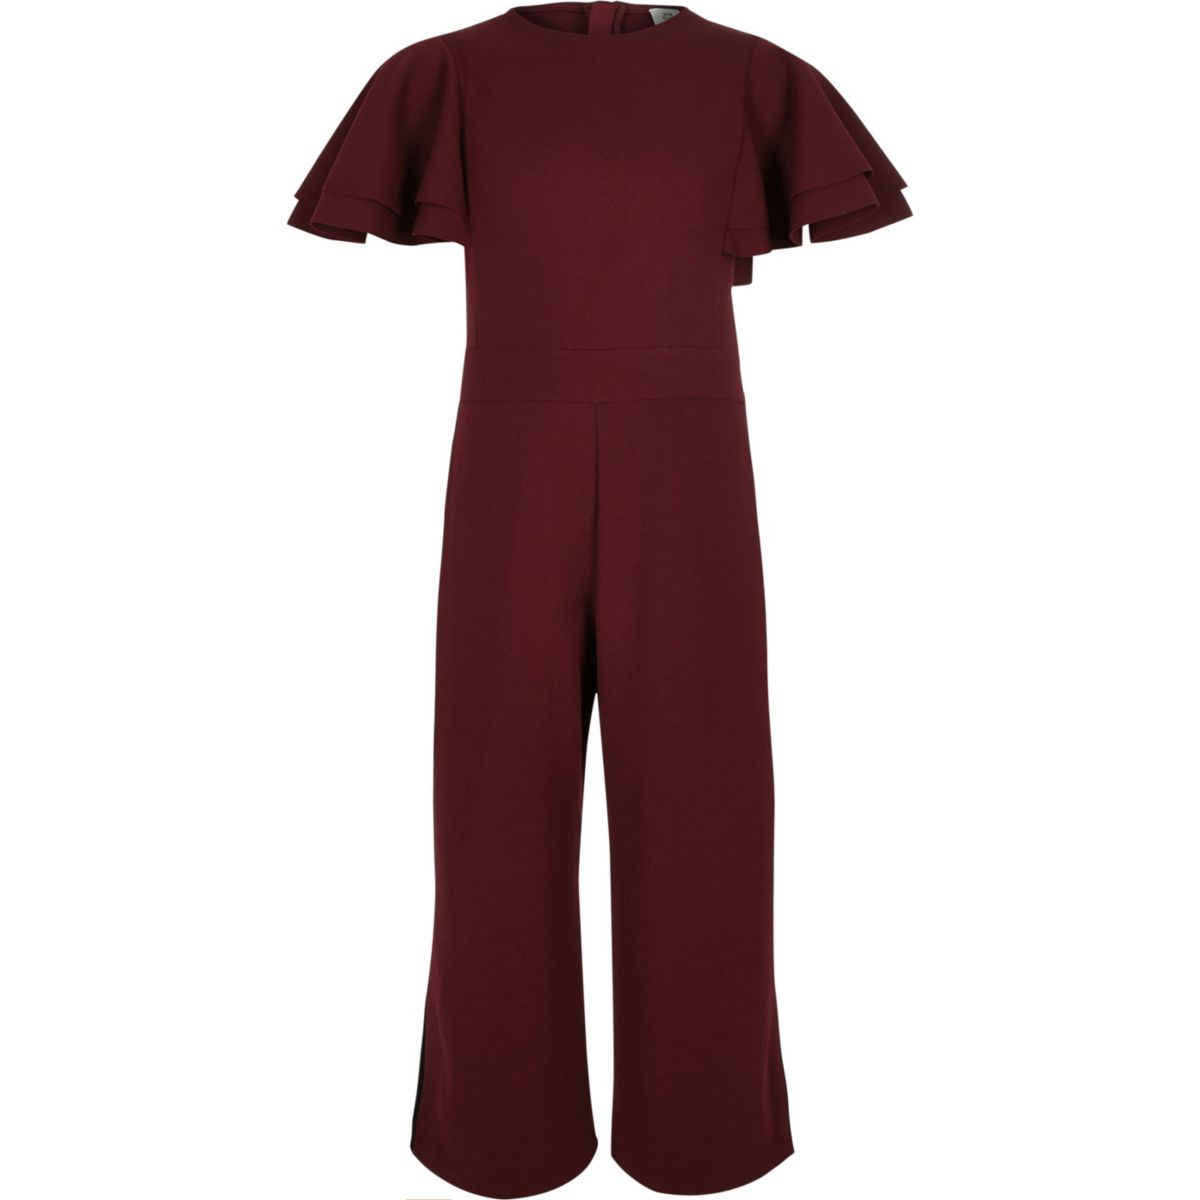 Girls burgundy frill sleeve culotte jumpsuit